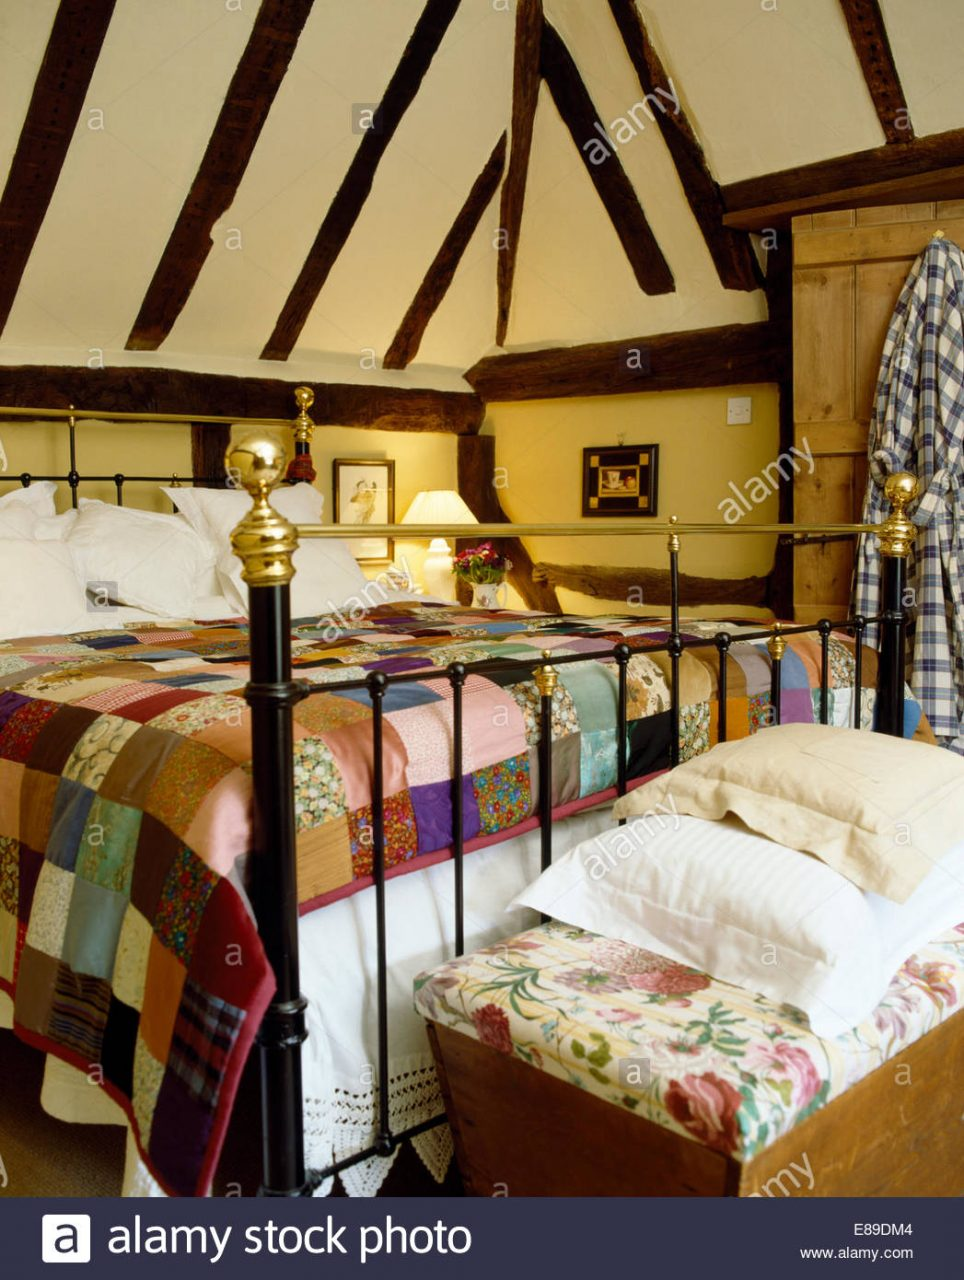 Colourful Patchwork Quilt On Antique Brass Bed In Cottage Bedroom